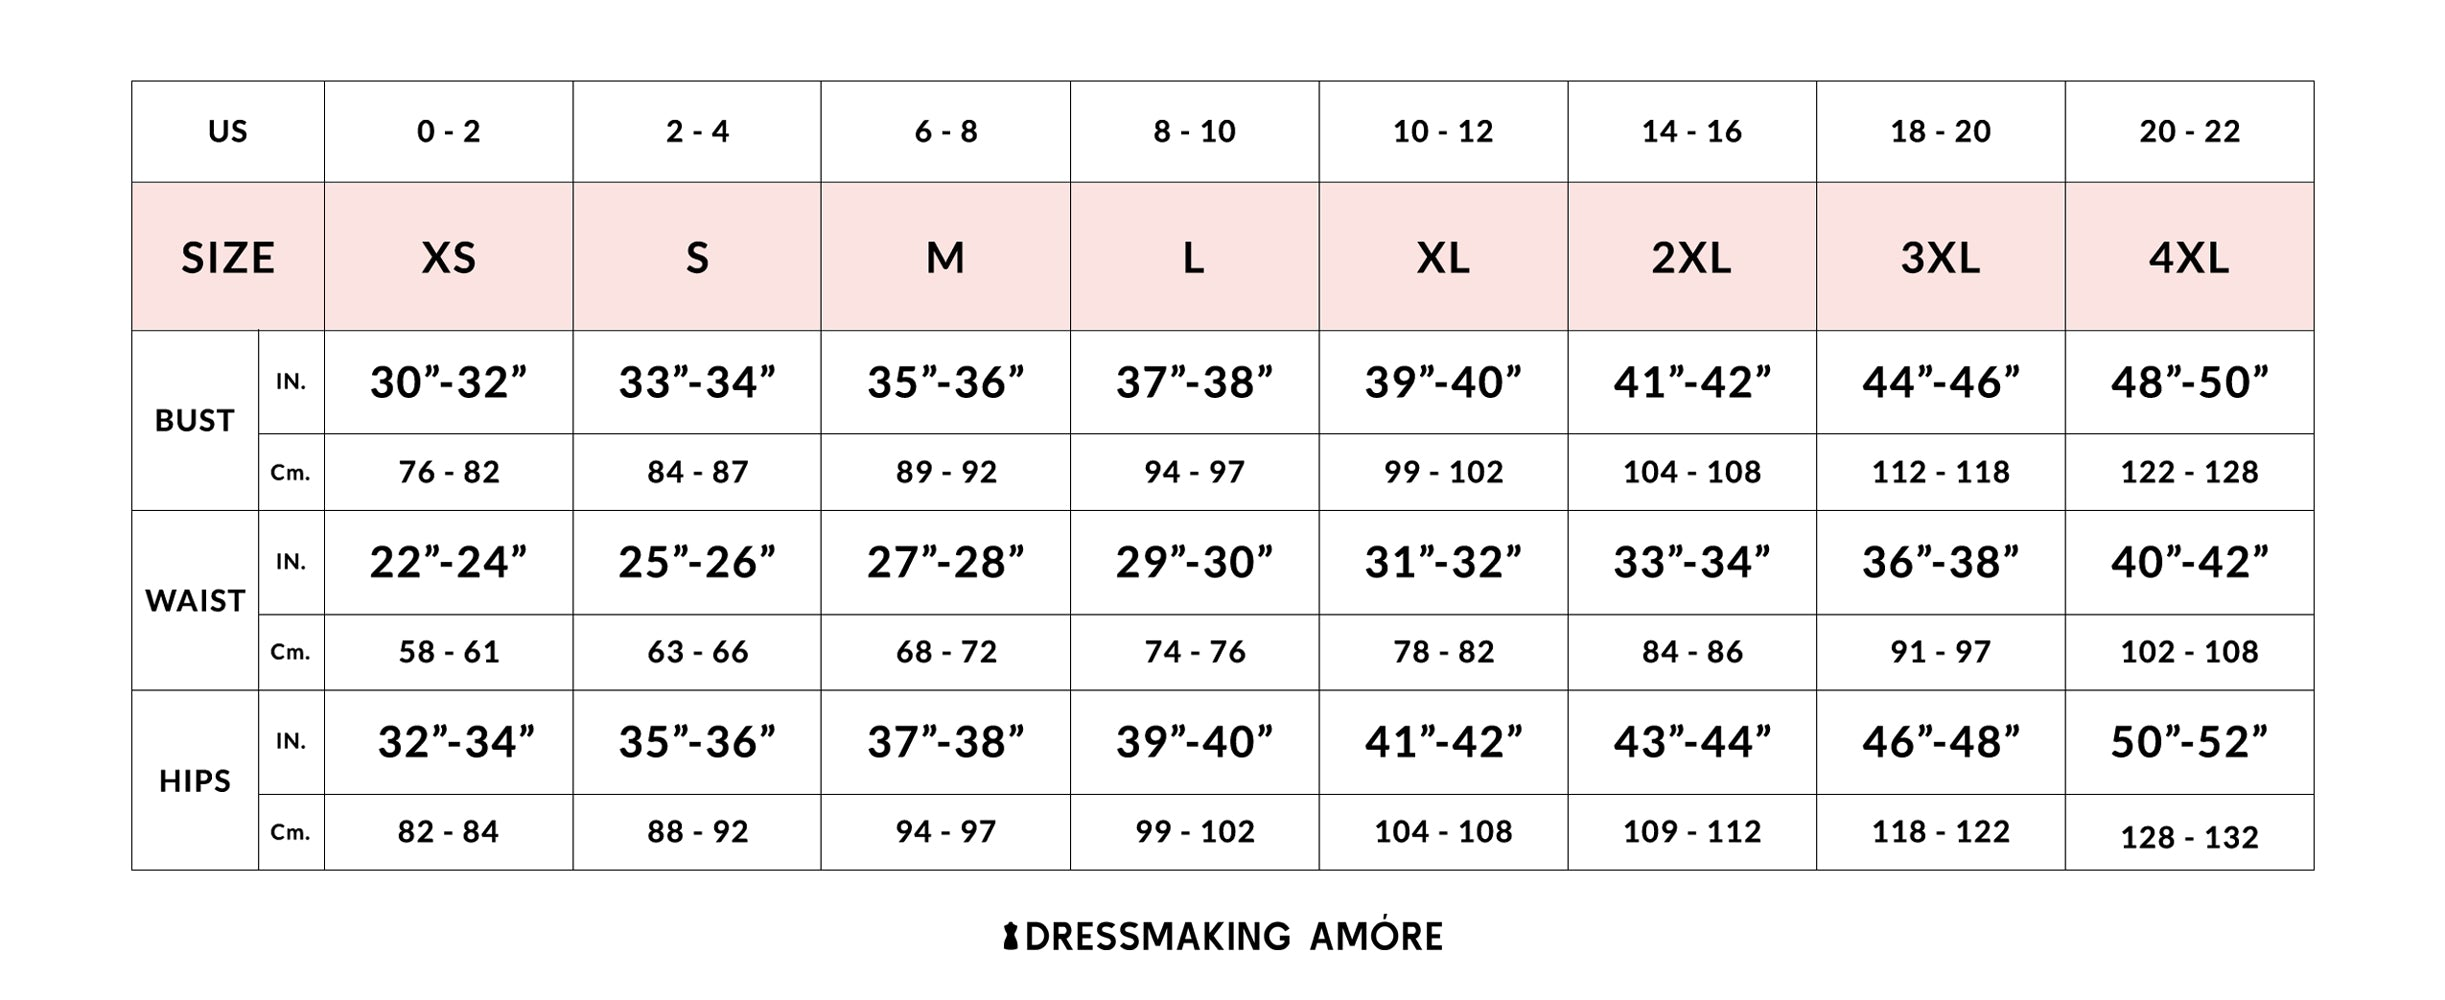 Dressmaking Amore Sewing Patterns Sizing Guide